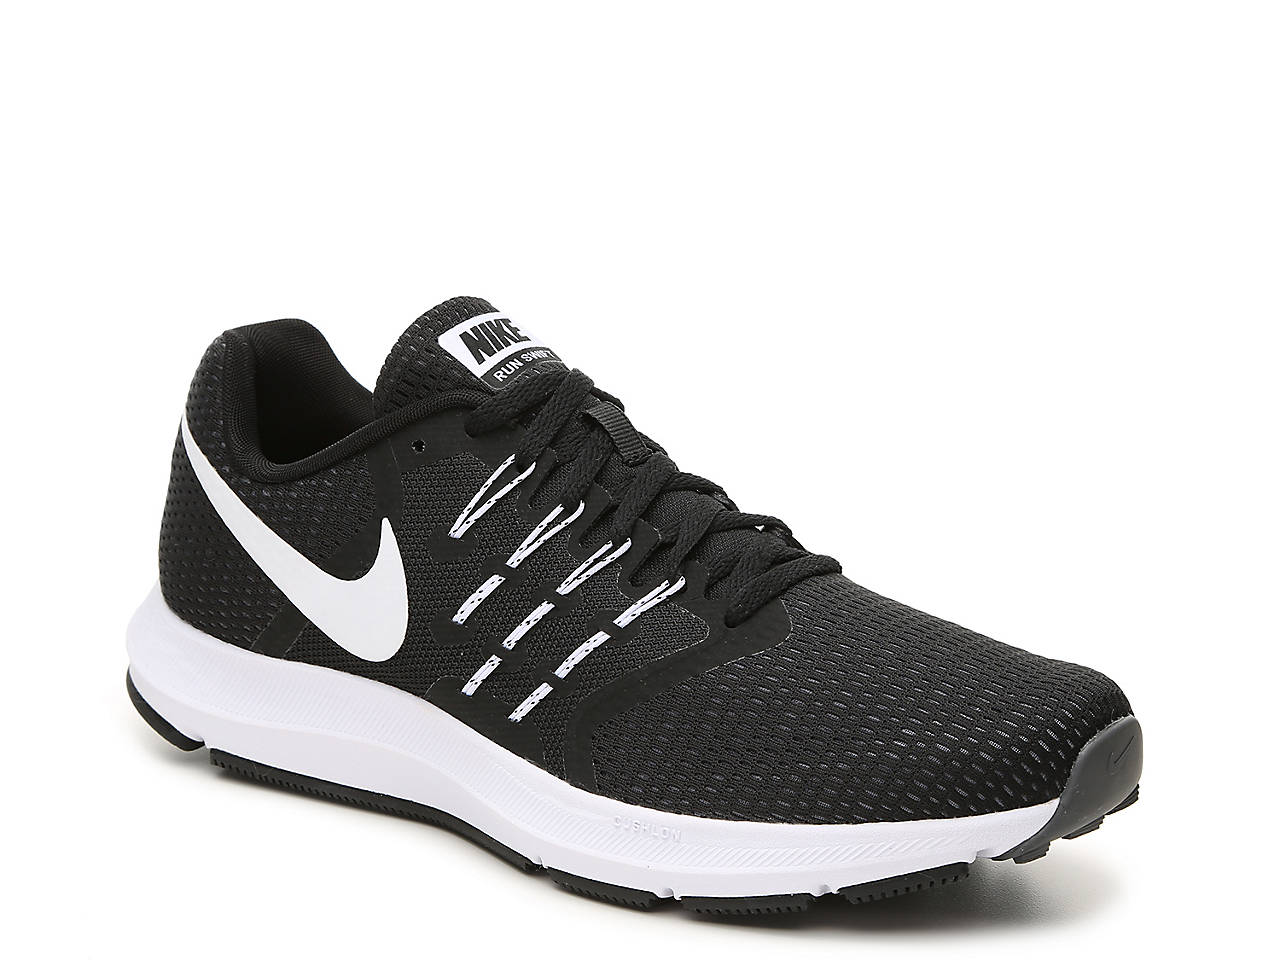 7197b59c6bc6 Nike Run Swift Lightweight Running Shoe - Men s Men s Shoes